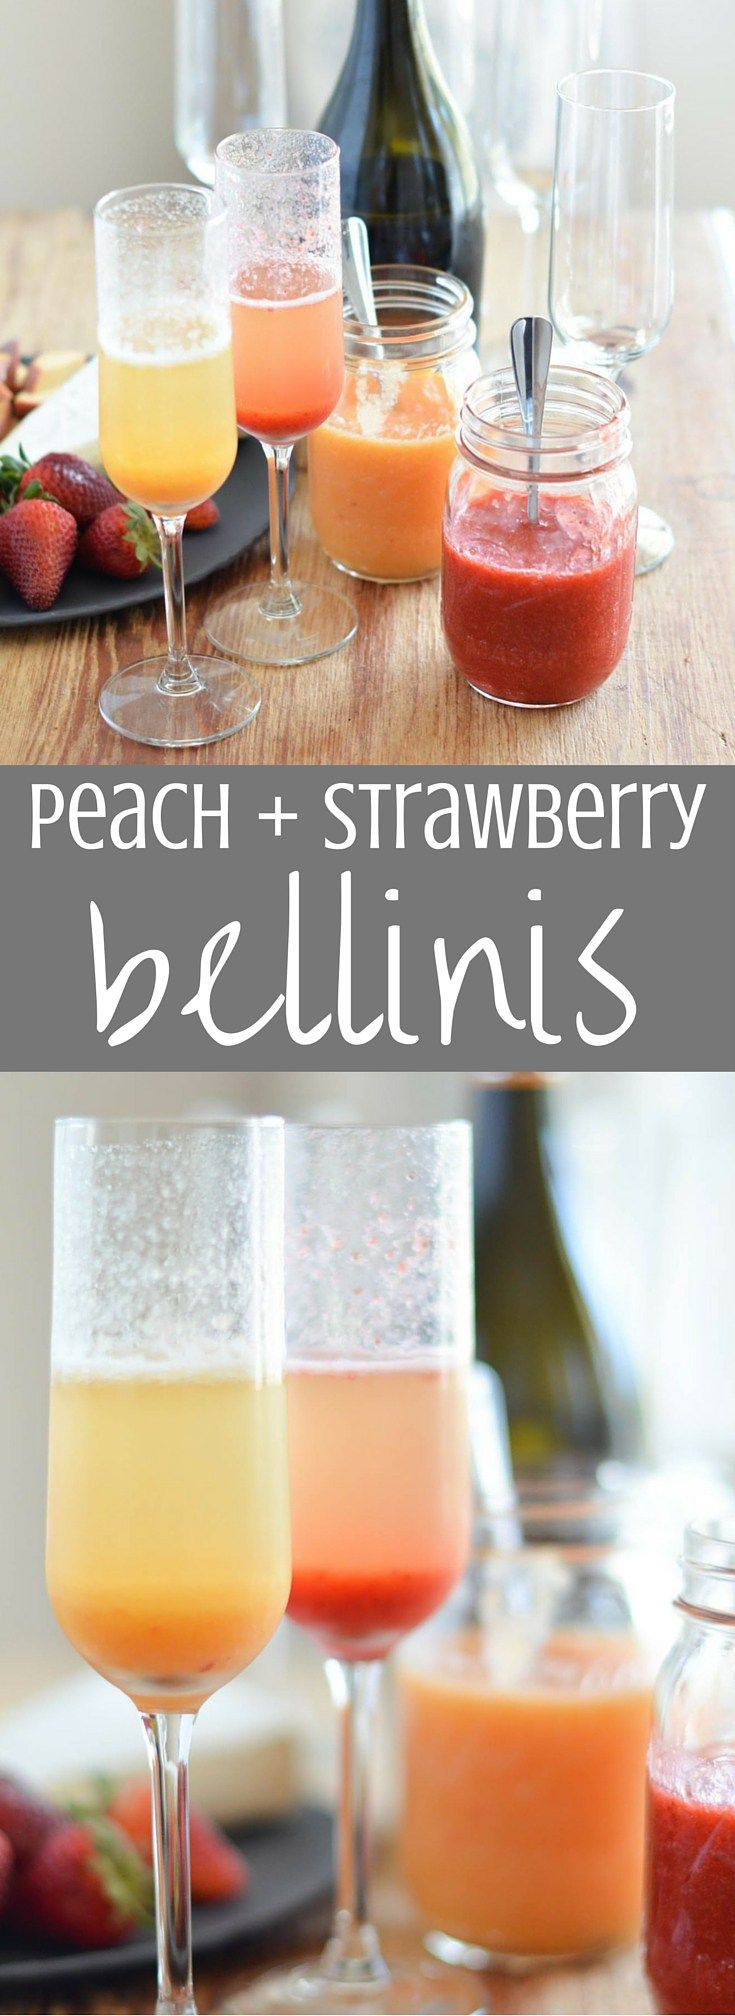 Peach and Strawberry Bellinis | Lightly sweetened purees of peach and strawberry are spooned into champagne glasses and topped with VOVETI Prosecco. These peach and strawberry bellinis are the perfect addition to any brunch or gathering! Clickthrough for the full recipe. #VOVETI #CleverGirls